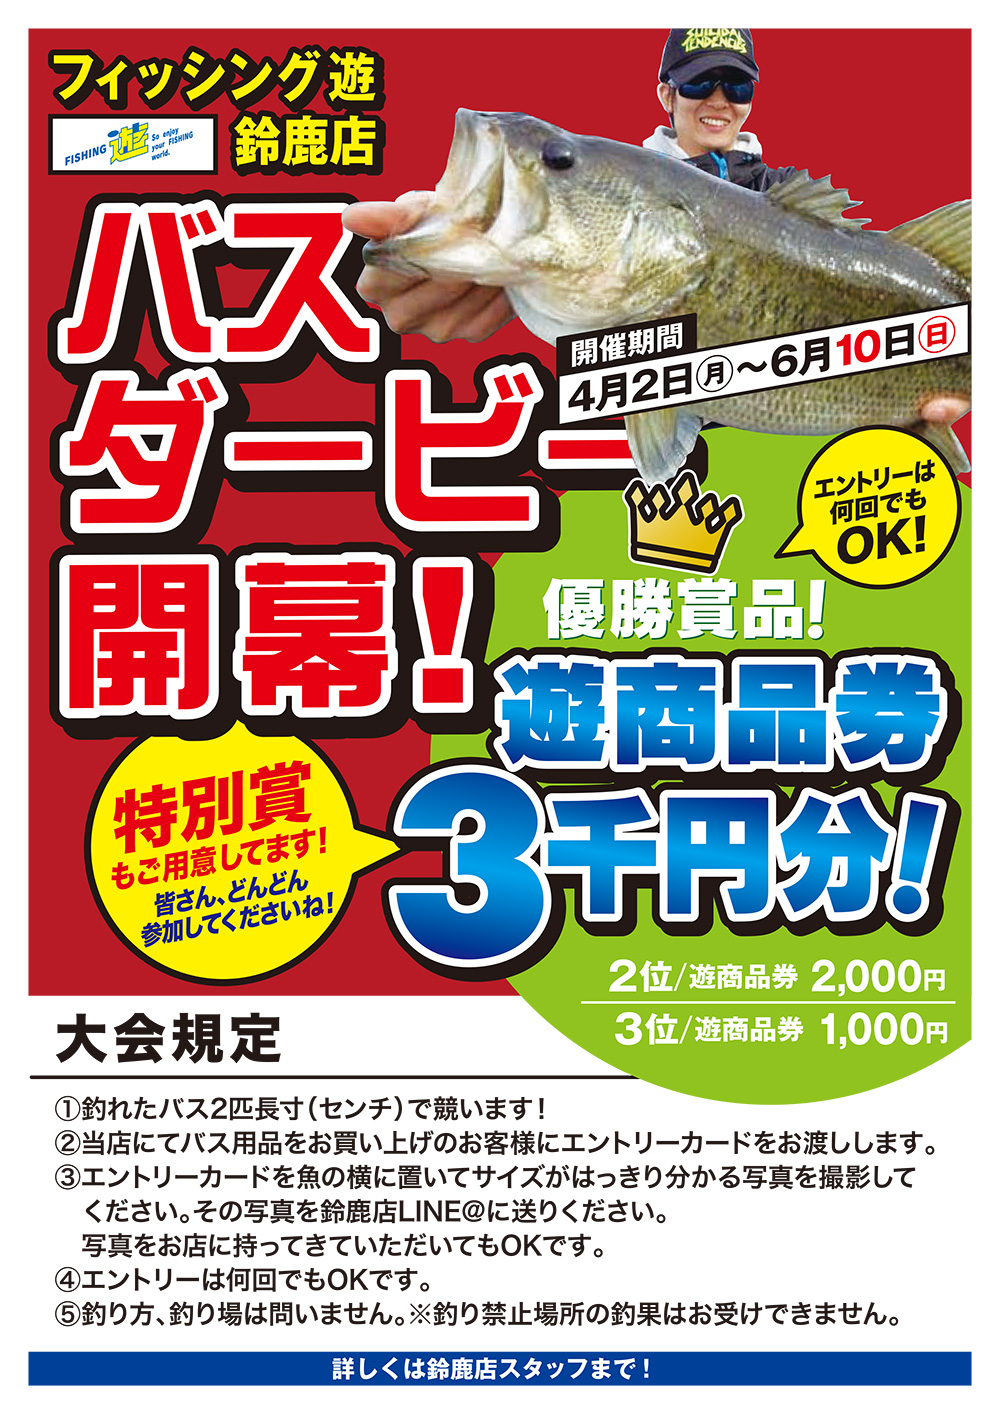 <a href=&quot;http://fishing-you.com/event/180402suzuka_bass&quot;>鈴鹿店 バスダービー</a>